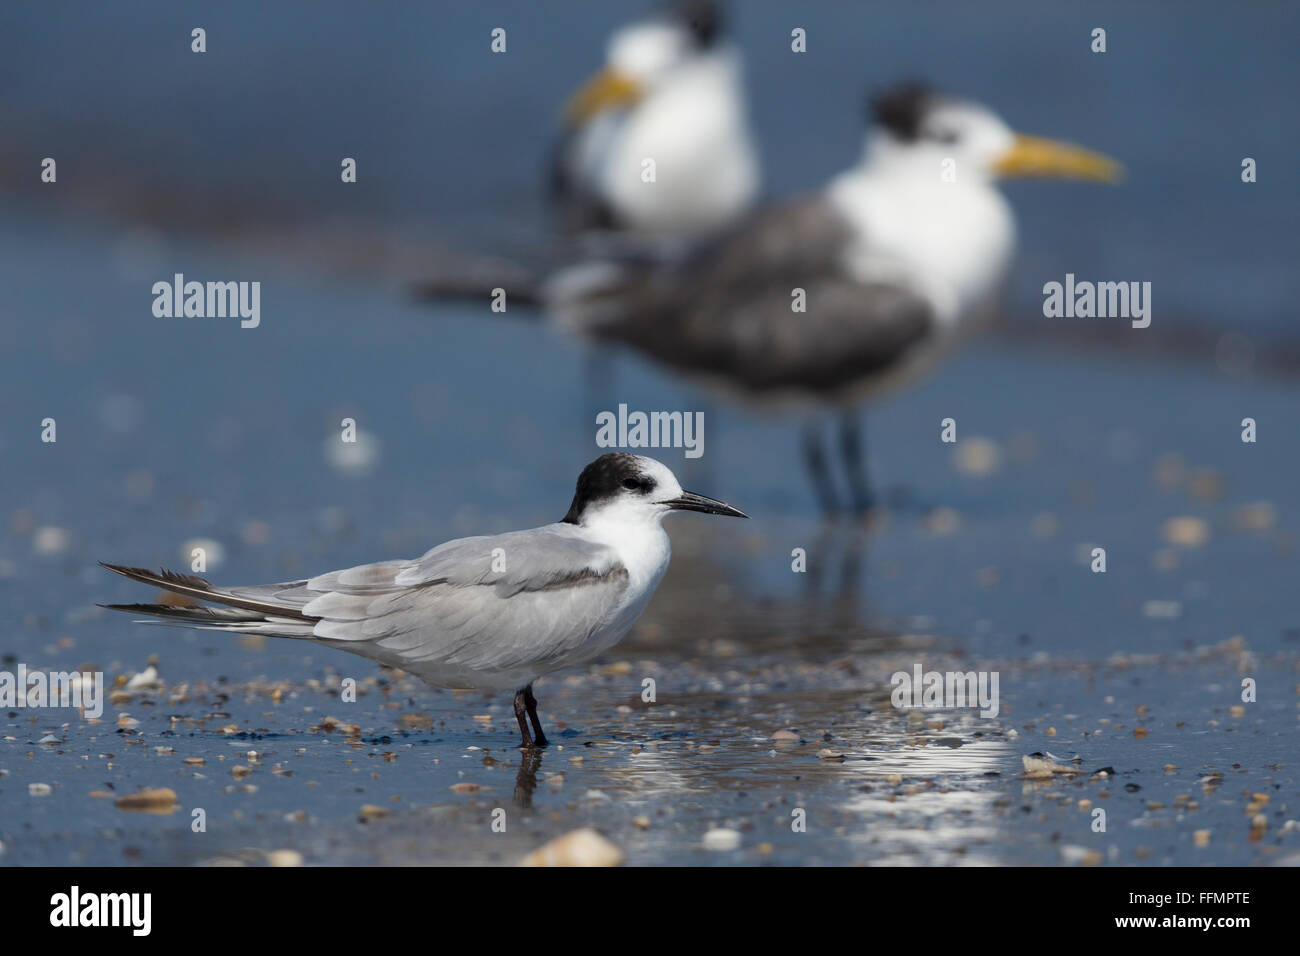 Common Tern (Sterna hirundo), standing on a beach, Liwa, Al-Batihan, Oman - Stock Image